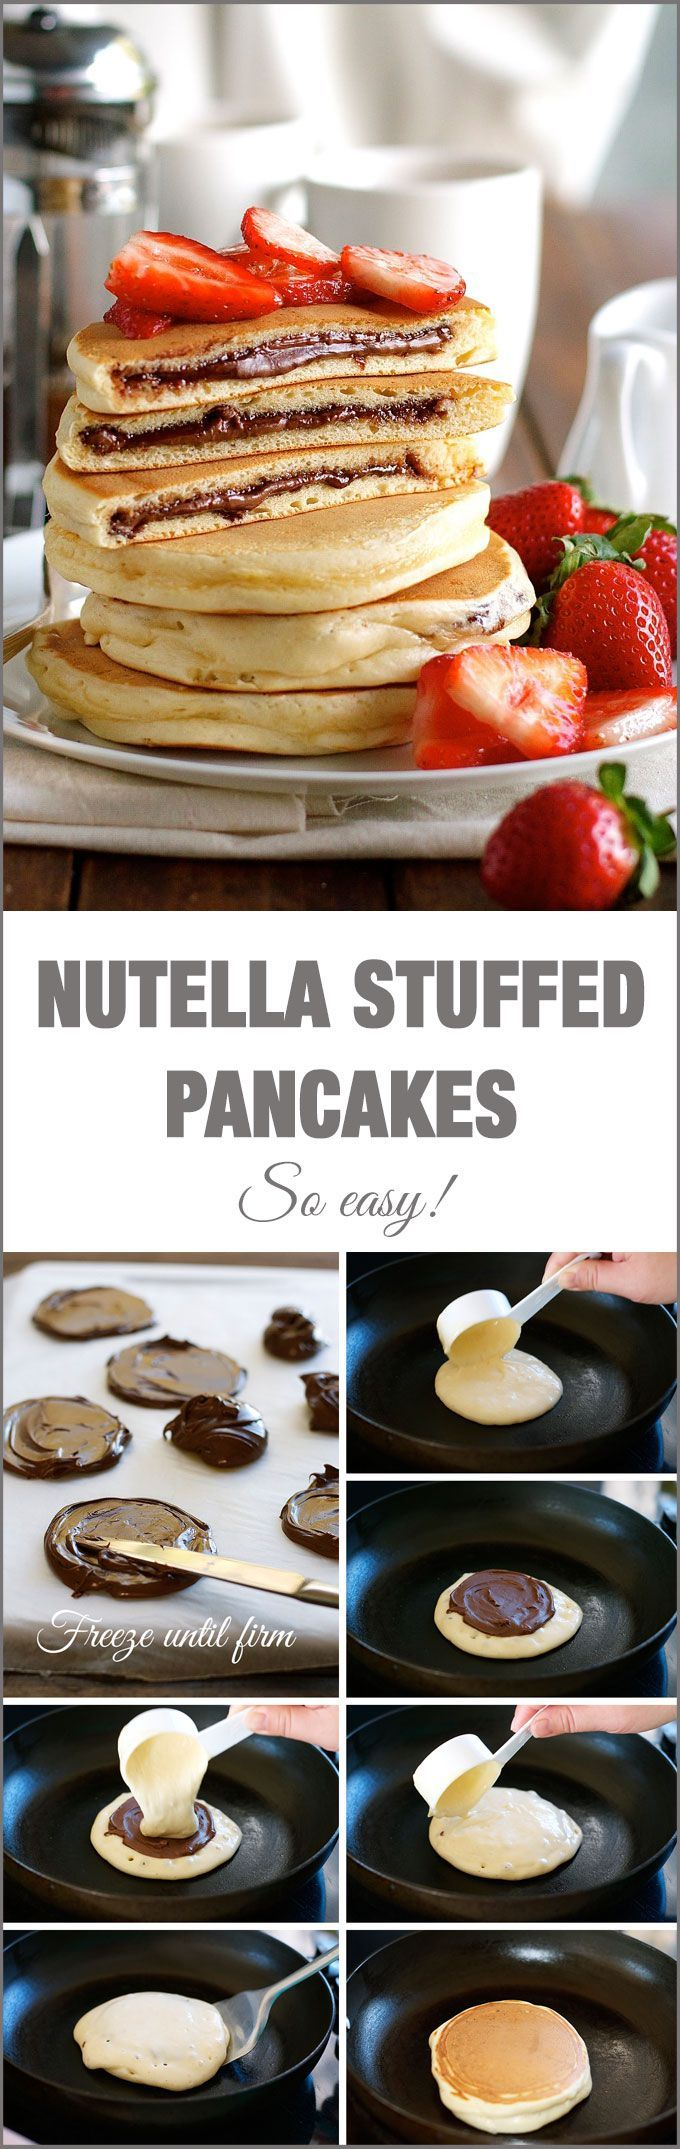 Panquecas rellenas de Nutella o lo que quieras (mermelada, mantequilla de mani, dulce de leche, cream cheese, etc) Nutella Stuffed Pancakes: frozen Nutella discs makes it a breeze to make the Nutella stuffed pancakes! Can also use jam, cream cheese, peanut butter, etc. Just freeze into small circles.